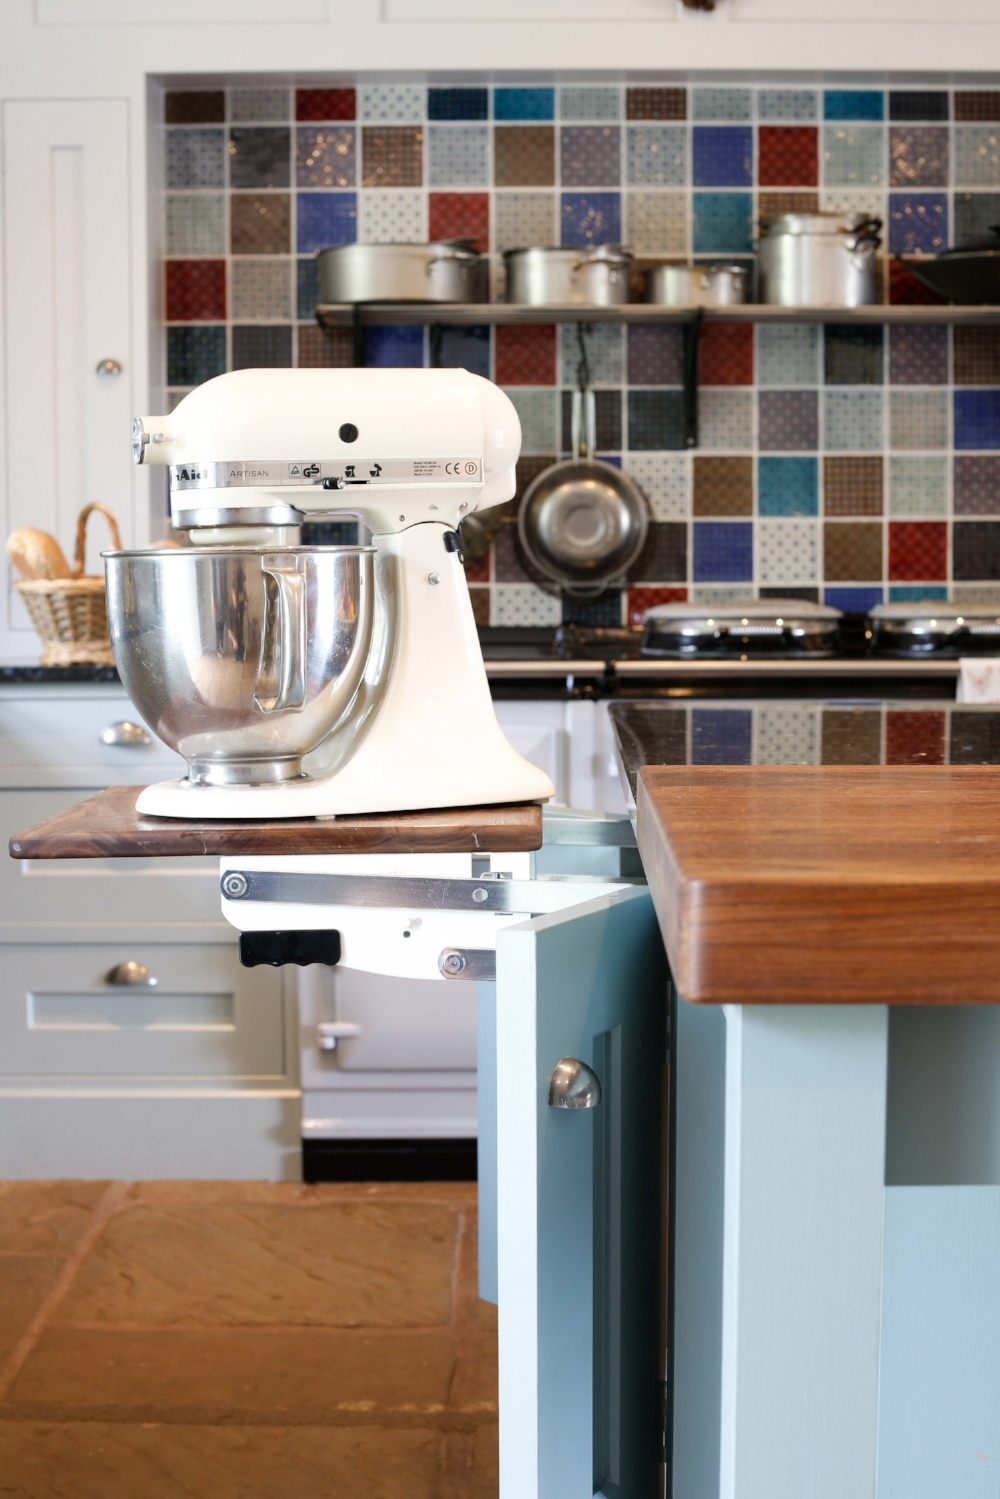 mixer in handmade kitchen.jpg